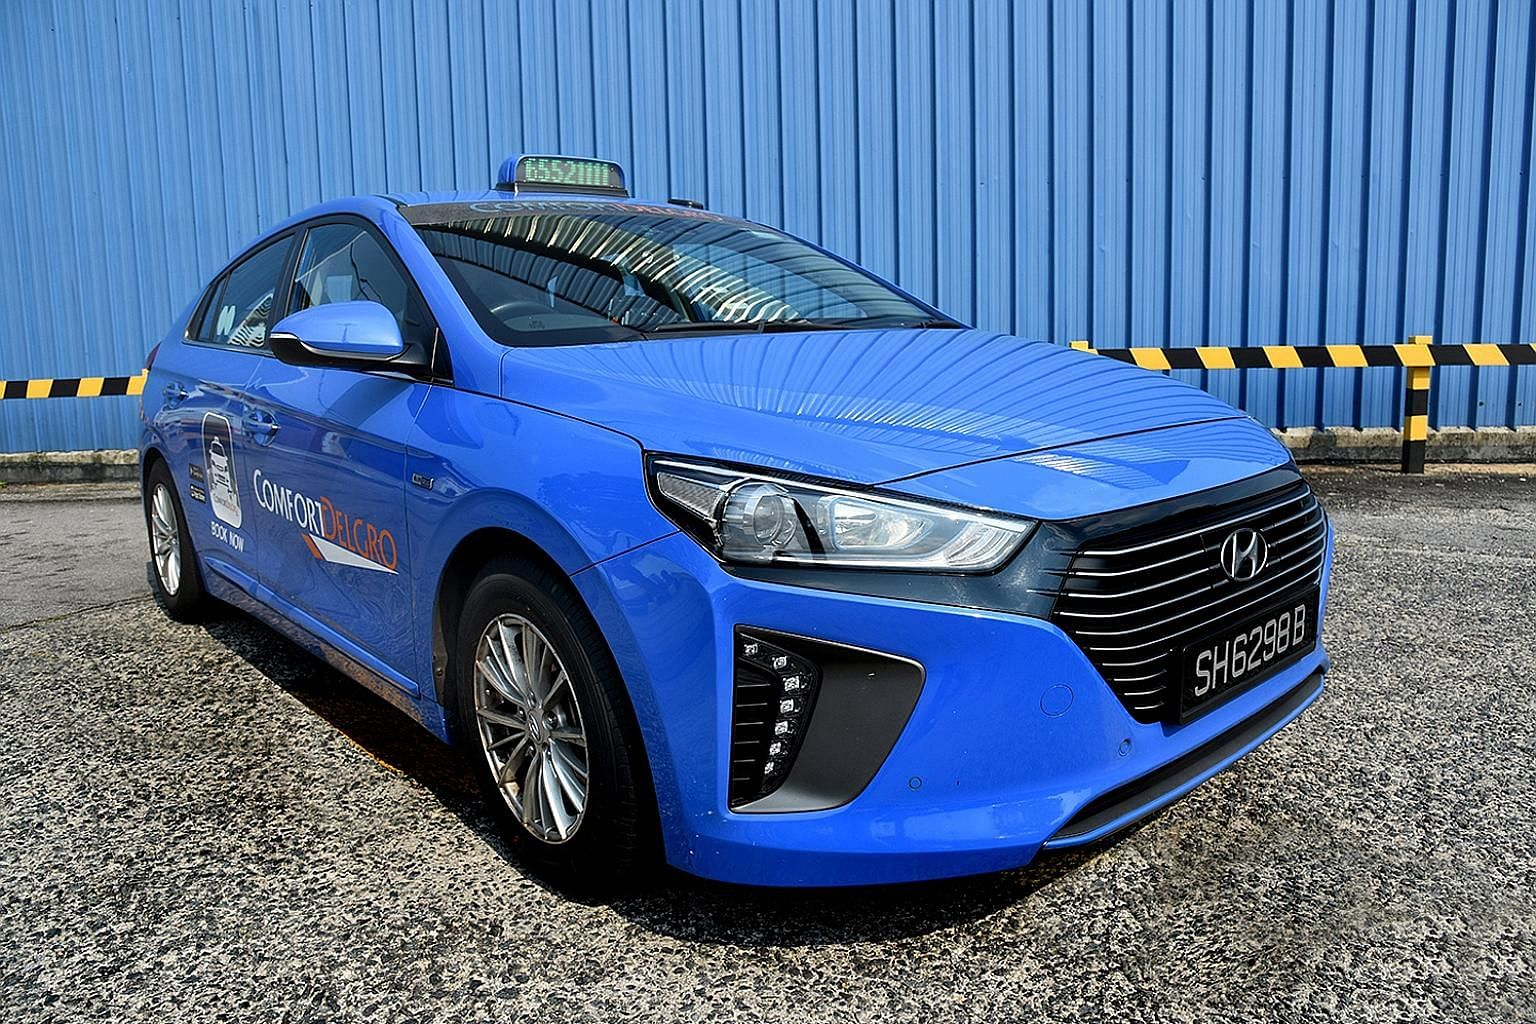 Industry leader ComfortDelGro said it has just placed an order for 200 new hybrid Hyundai Ioniq cabs - its first order in nearly 18 months.